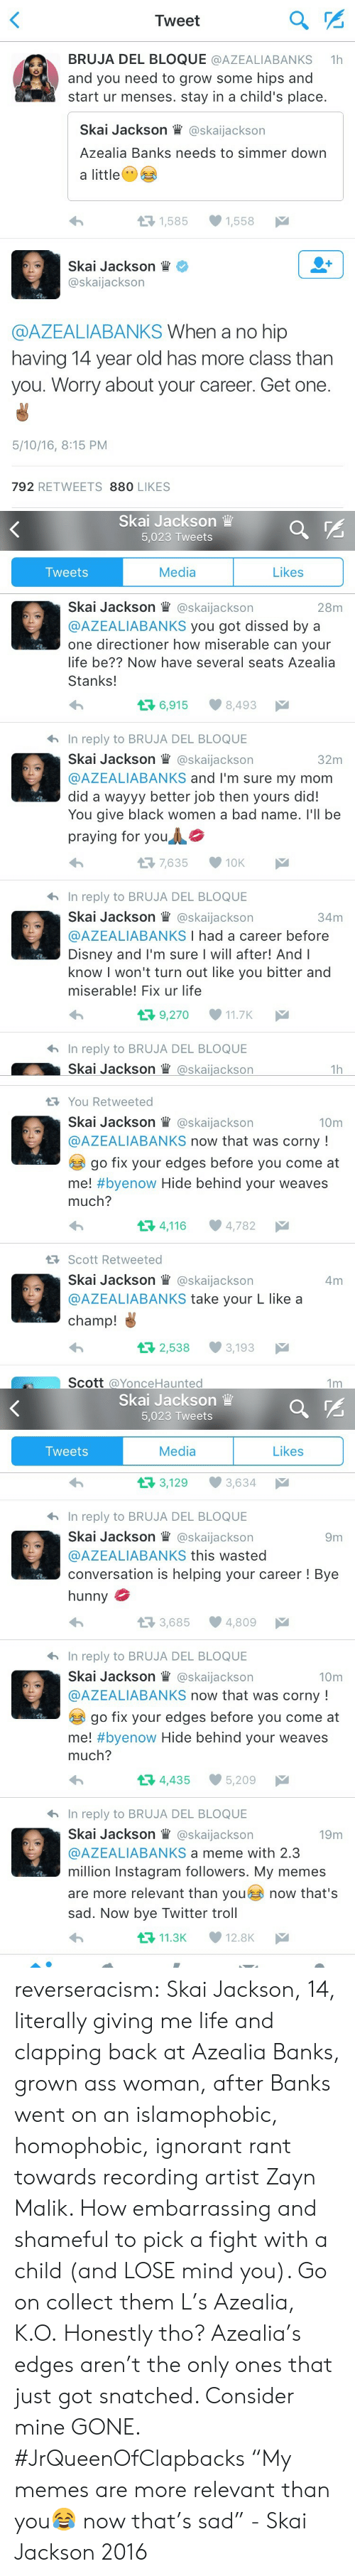 My Memes Are: Tweet  BRUJA DEL BLOQUE @AZEALIABANKS 1  and you need to grow some hips and  start ur menses. stay in a child's place.  Skal Jackson眥@ska.Jackson  Azealia Banks needs to simmer down  a little  1,585  1,558  Skal Jackson眥*  @skaijackson  @AZEALIABANKS When a no hip  having 14 year old has more class than  you. Worry about your career. Get one.  5/10/16, 8:15 PM  792 RETWEETS 880 LIKES   Skai Jackson  5,023 Tweets  Tweets  Media  Likes  Skal Jackson @ska.Jackson  @AZEALIABANKS you got dissed by a  one directioner how miserable can your  life be?? Now have several seats Azealia  Stanks!  28m  6,915  8,493  hIn reply to BRUJA DEL BLOQUE  Skai Jackson il @skaijackson  @AZEALIABANKS and I'm sure my mom  did a wayyy better job then yours did!  You give black women a bad name. l'll be  praying for you  32m  7,635 10K  hIn reply to BRUJA DEL BLOQUE  Skal Jackson眥@ska.Jackson  @AZEALIABANKS I had a career before  Disney and I'm sure I will after! Andl  know I won't turn out like you bitter and  miserable! Fix ur life  34m  9,270 11.7K  hIn reply to BRUJA DEL BLOQUE  Skal Jackson眥@skal.ackson  1h   You Retweeted  Skal Jackson眥@ska.Jackson  @AZEALIABANKS now that was corny!  10m  go fix your edges before you come at  me! #byenow Hide behind your weaves  much?  4,116 4,782  RScott Retweeted  Skai Jackson W @skaijackson  @AZEALIABANKS take your L like a  champ!  4m  2,538 3,193  Scott @YonceHaunted  1m   Skai Jackson  5,023 Tweets  Tweets  Media  Likes  3,129 3,634  hIn reply to BRUJA DEL BLOQUE  Skai Jackson l @skaijackson  @AZEALIABANKS this wasted  conversation is helping your career! Bye  hunny  9m  3,685 4,809  hIn reply to BRUJA DEL BLOQUE  Skai Jackson lWl @skaijackson  @AZEALIABANKS now that was corny!  10m  go fix your edges before you come at  me! #byenow Hide behind your weaves  much?  34,435 5,209  In reply to BRUJA DEL BLOQUE  Skai Jackson W @skaijackson  @AZEALIABANKS a meme with 2.3  million Instagram followers. My memes  are more relevant than you no